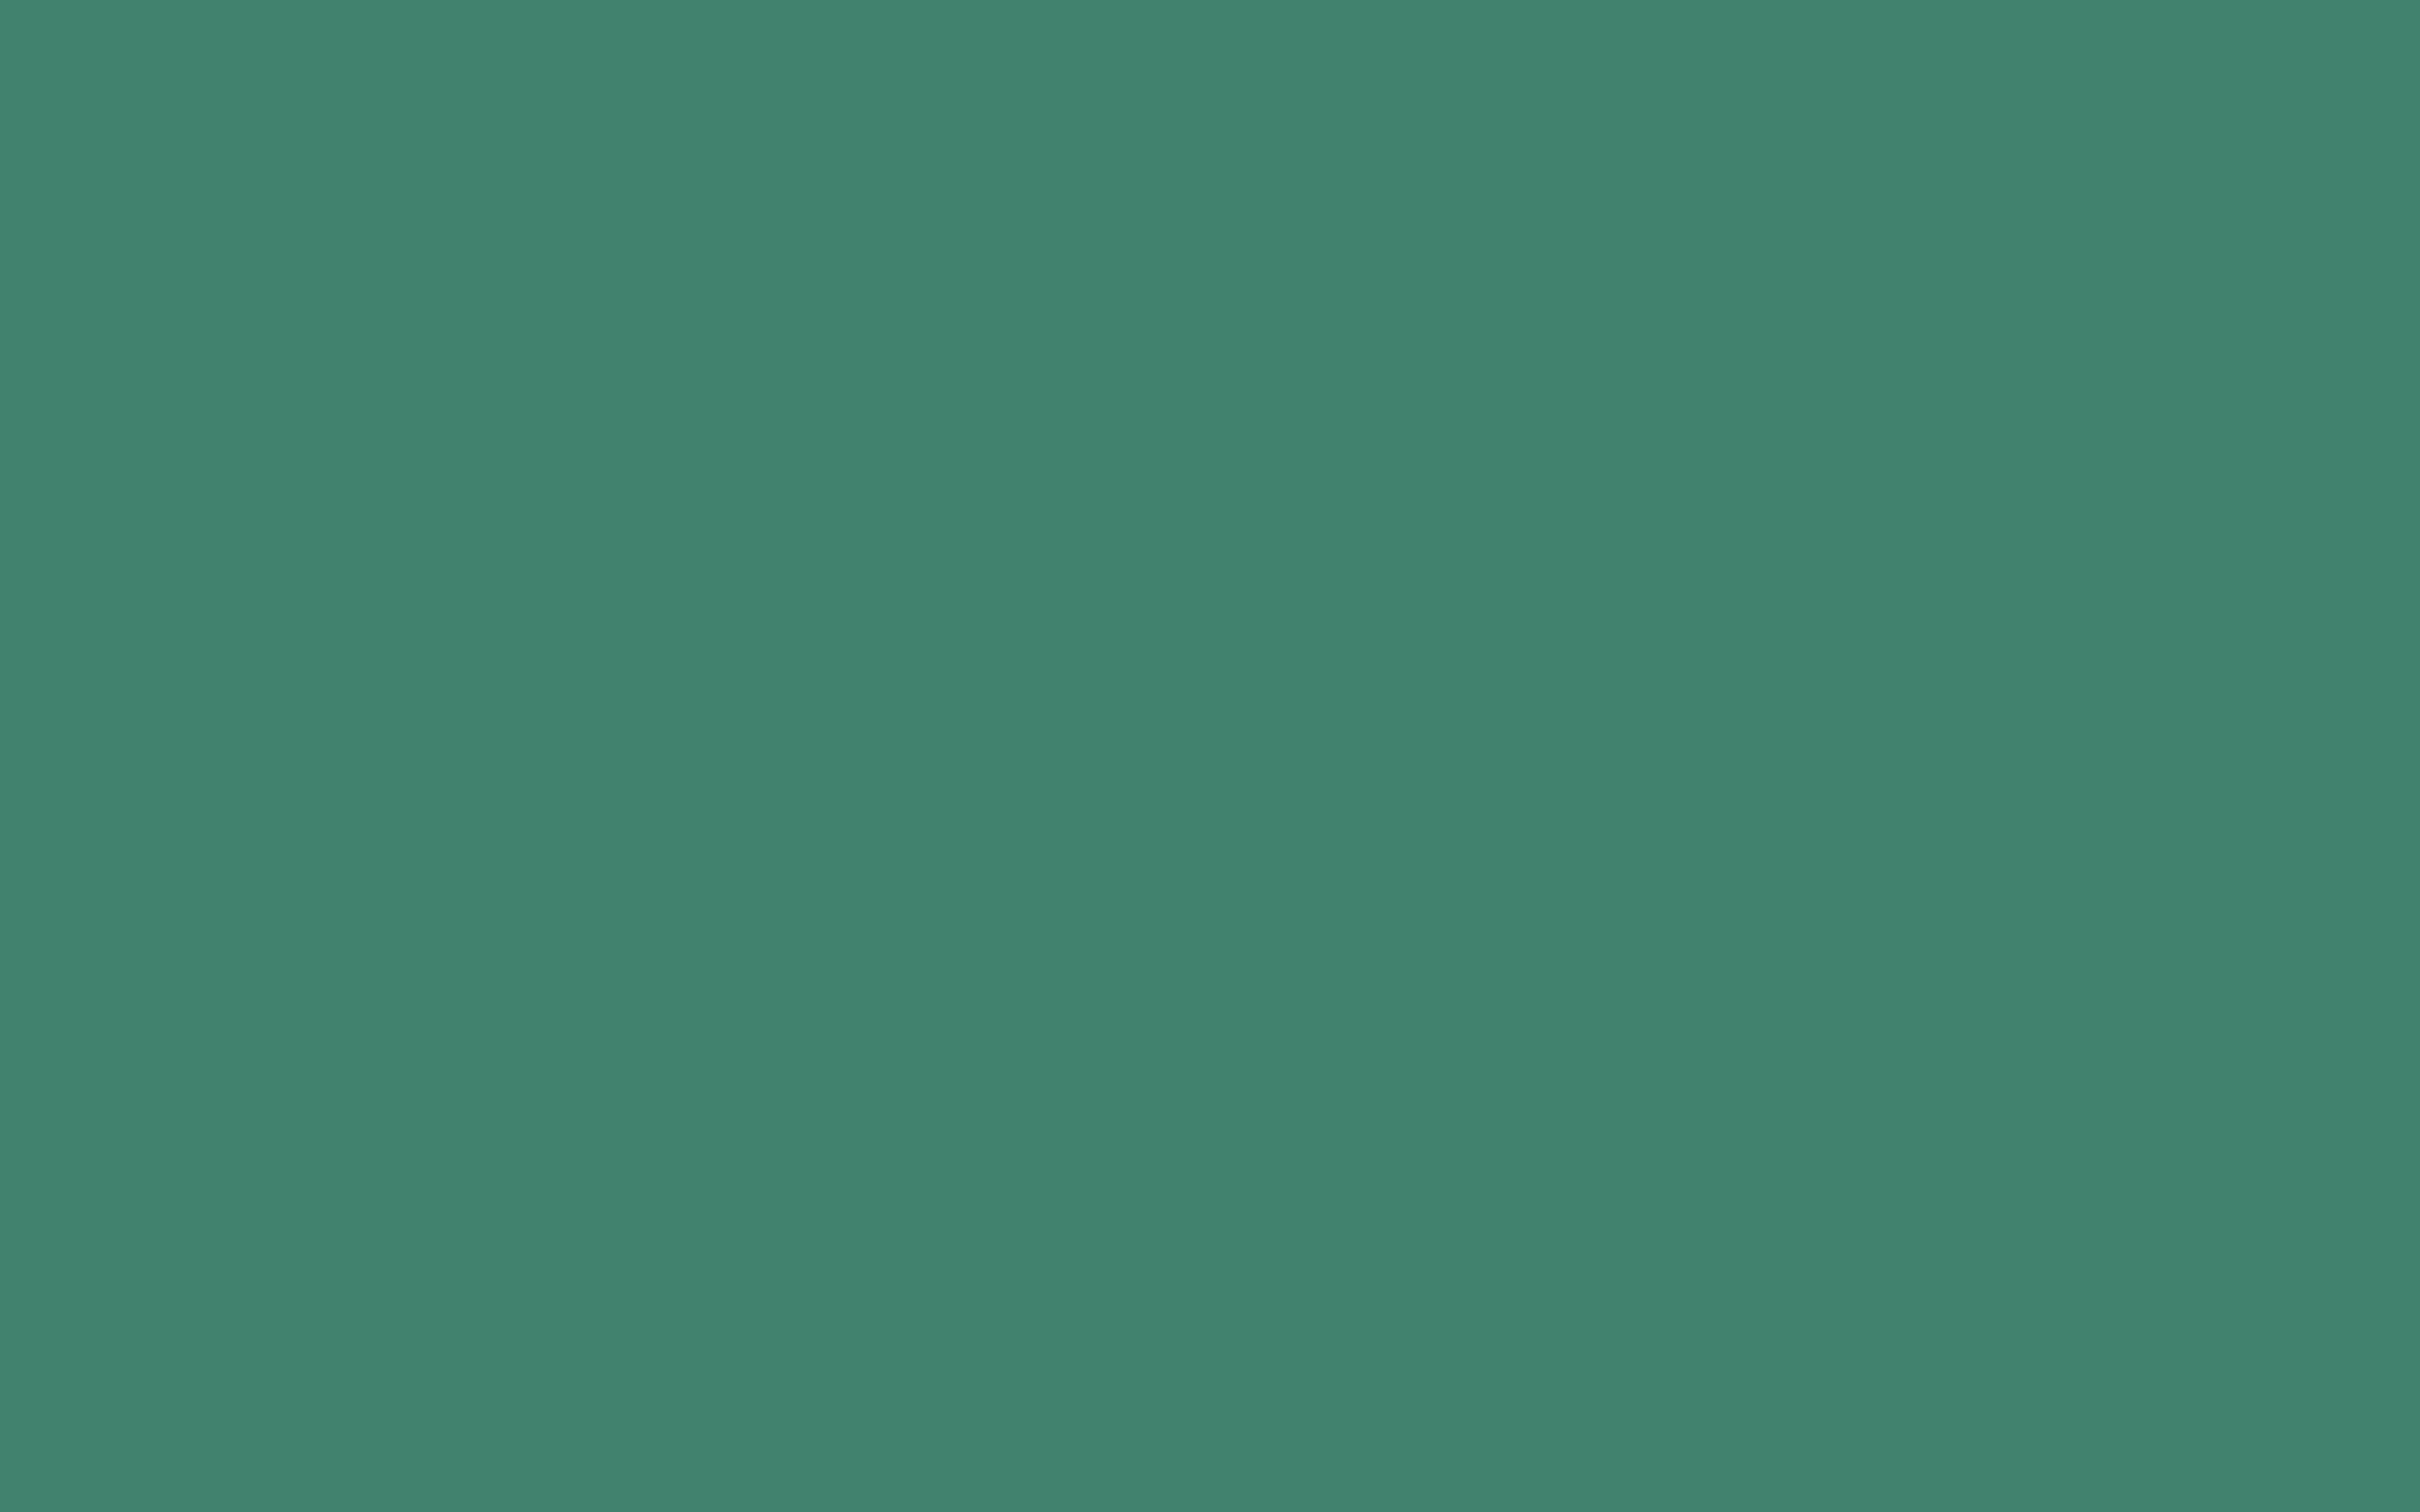 2880x1800 Viridian Solid Color Background